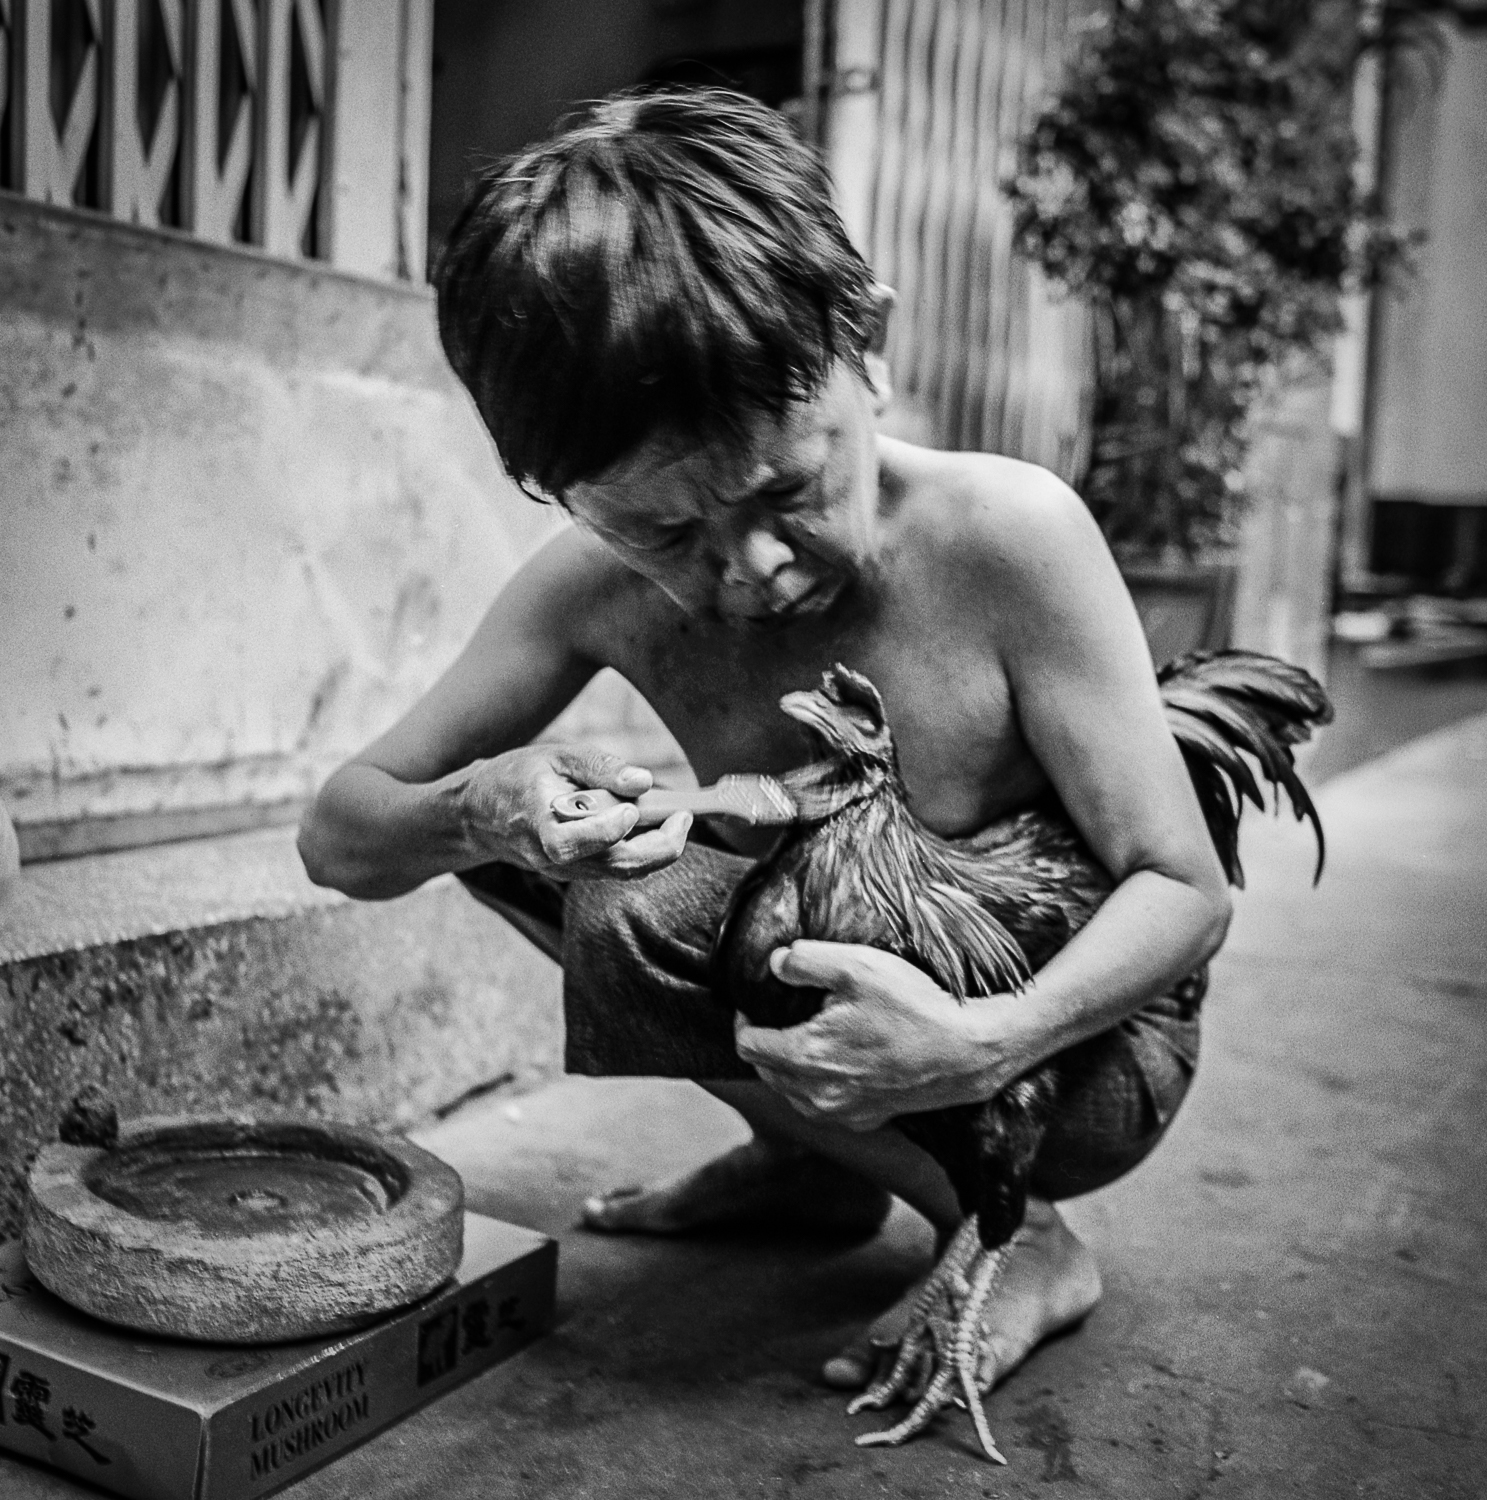 Man painting his rooster with red paint Ho Chi Minh City   Made with Hasselblad 501c with Kodak Tri-X 400 b&w film